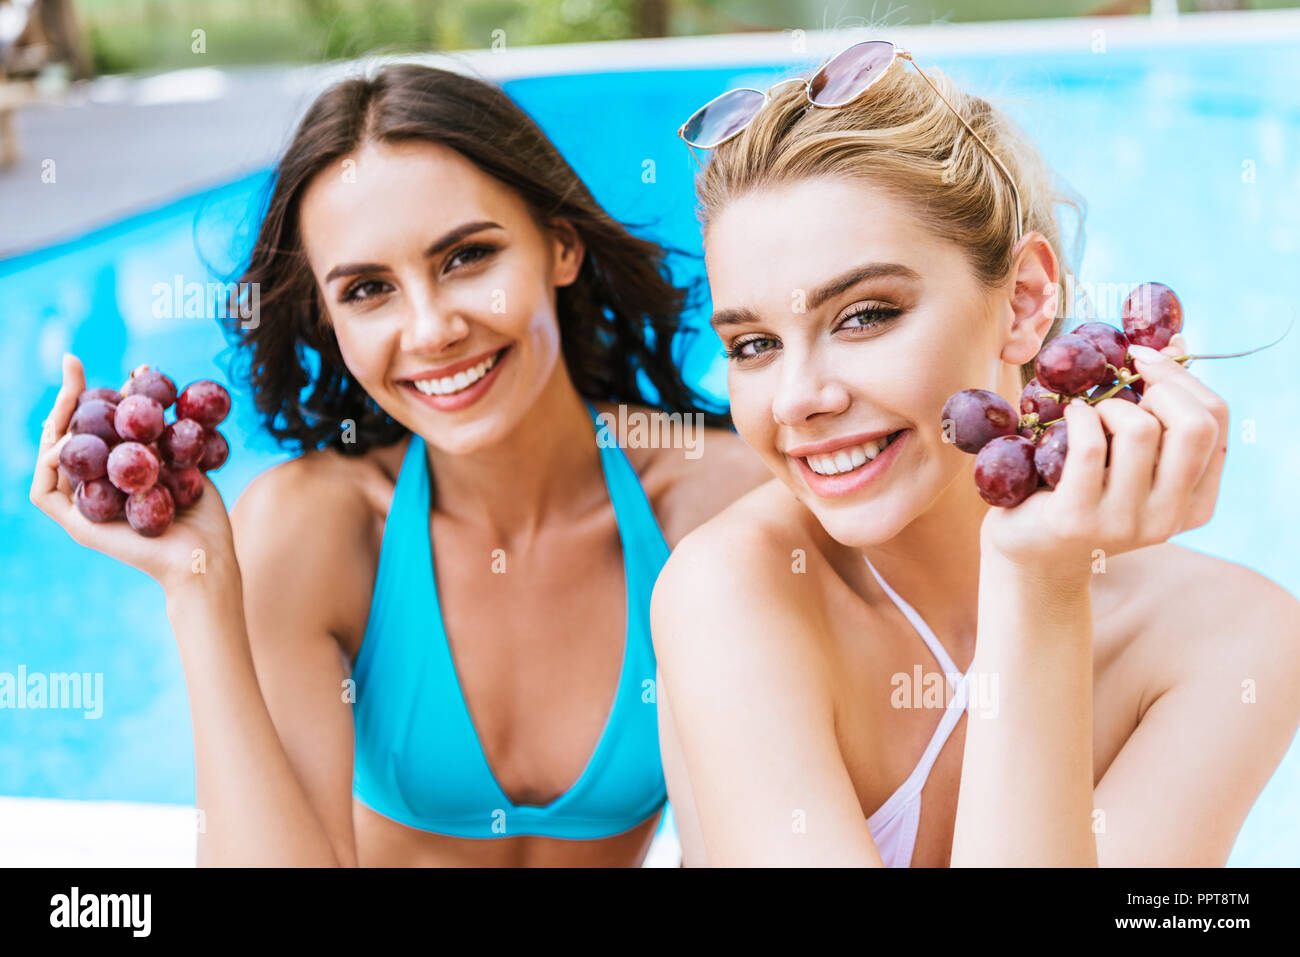 beautiful young women in swimwear holding fresh ripe grapes and smiling at camera at poolside - Stock Image